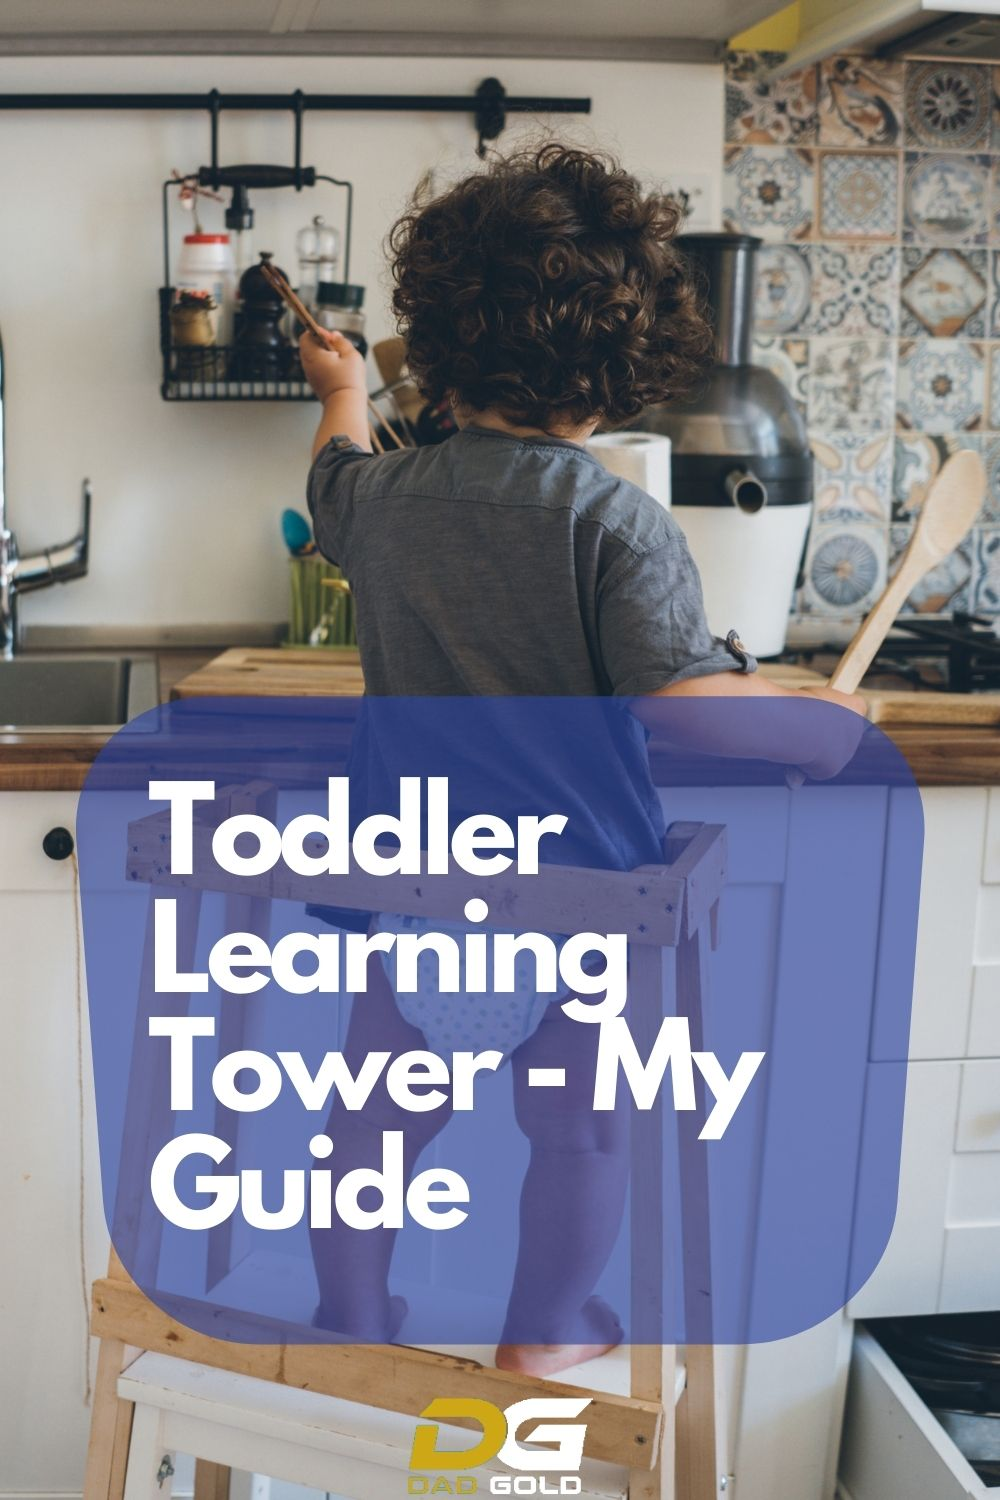 Toddler Learning Tower - My Guide